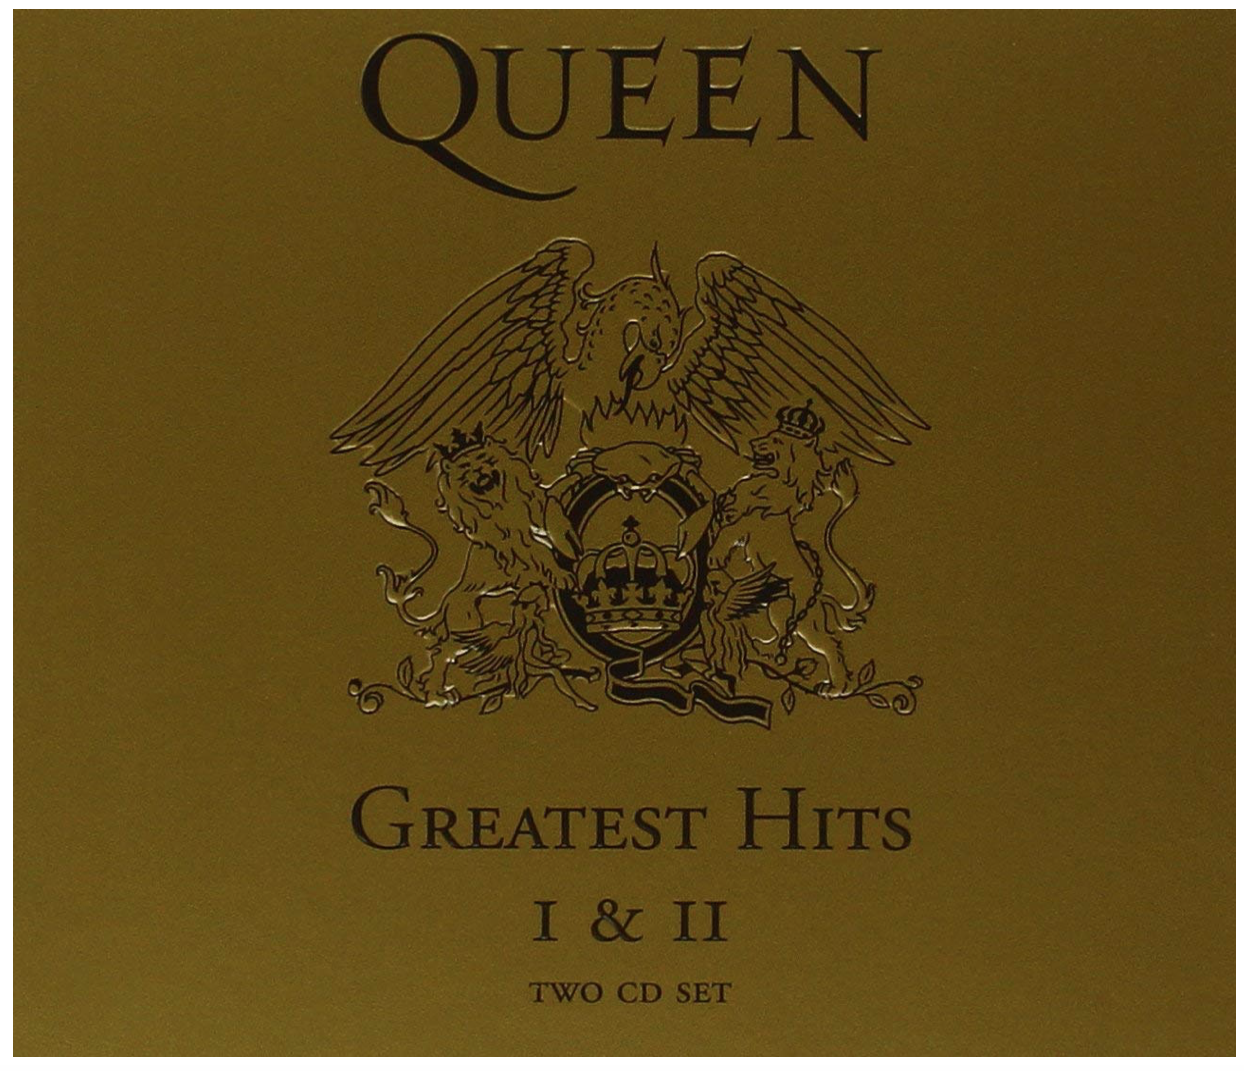 Queen - Greatest Hits: I & II Collection (CD) NEW • Best of, Bohemian Rhapsody